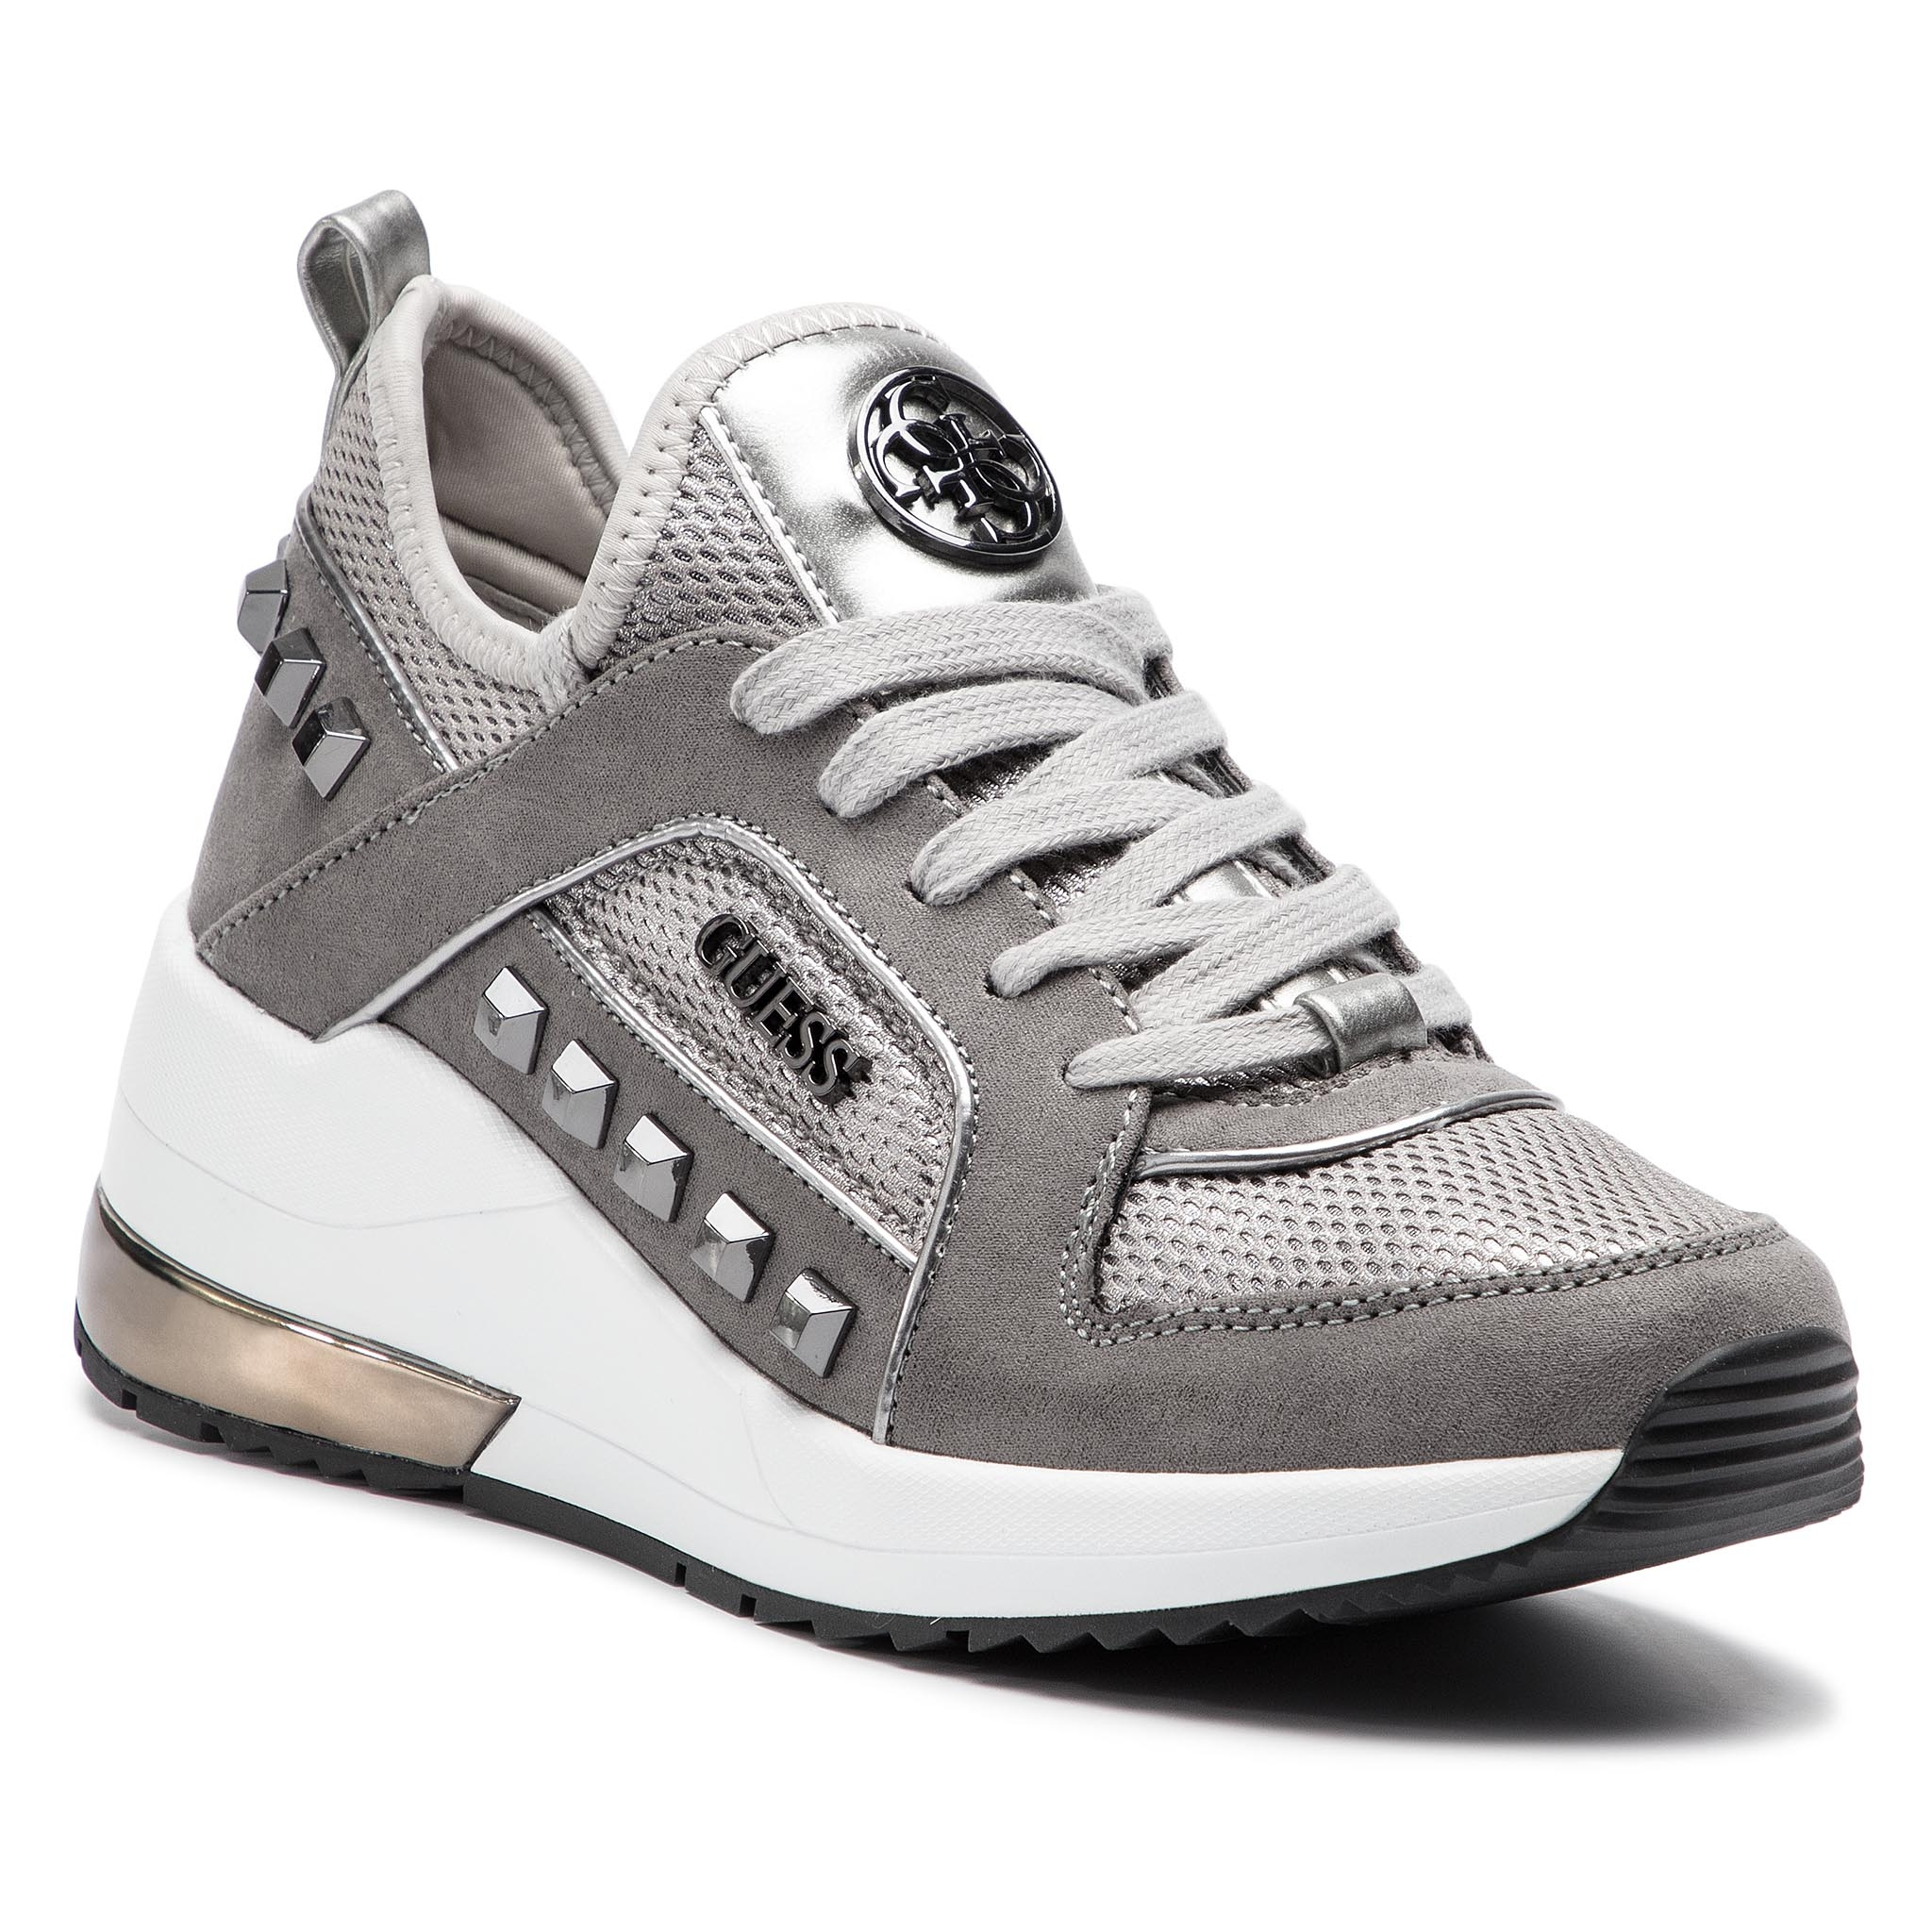 Sneakers GUESS - FL5JUL FAB12 SILVE